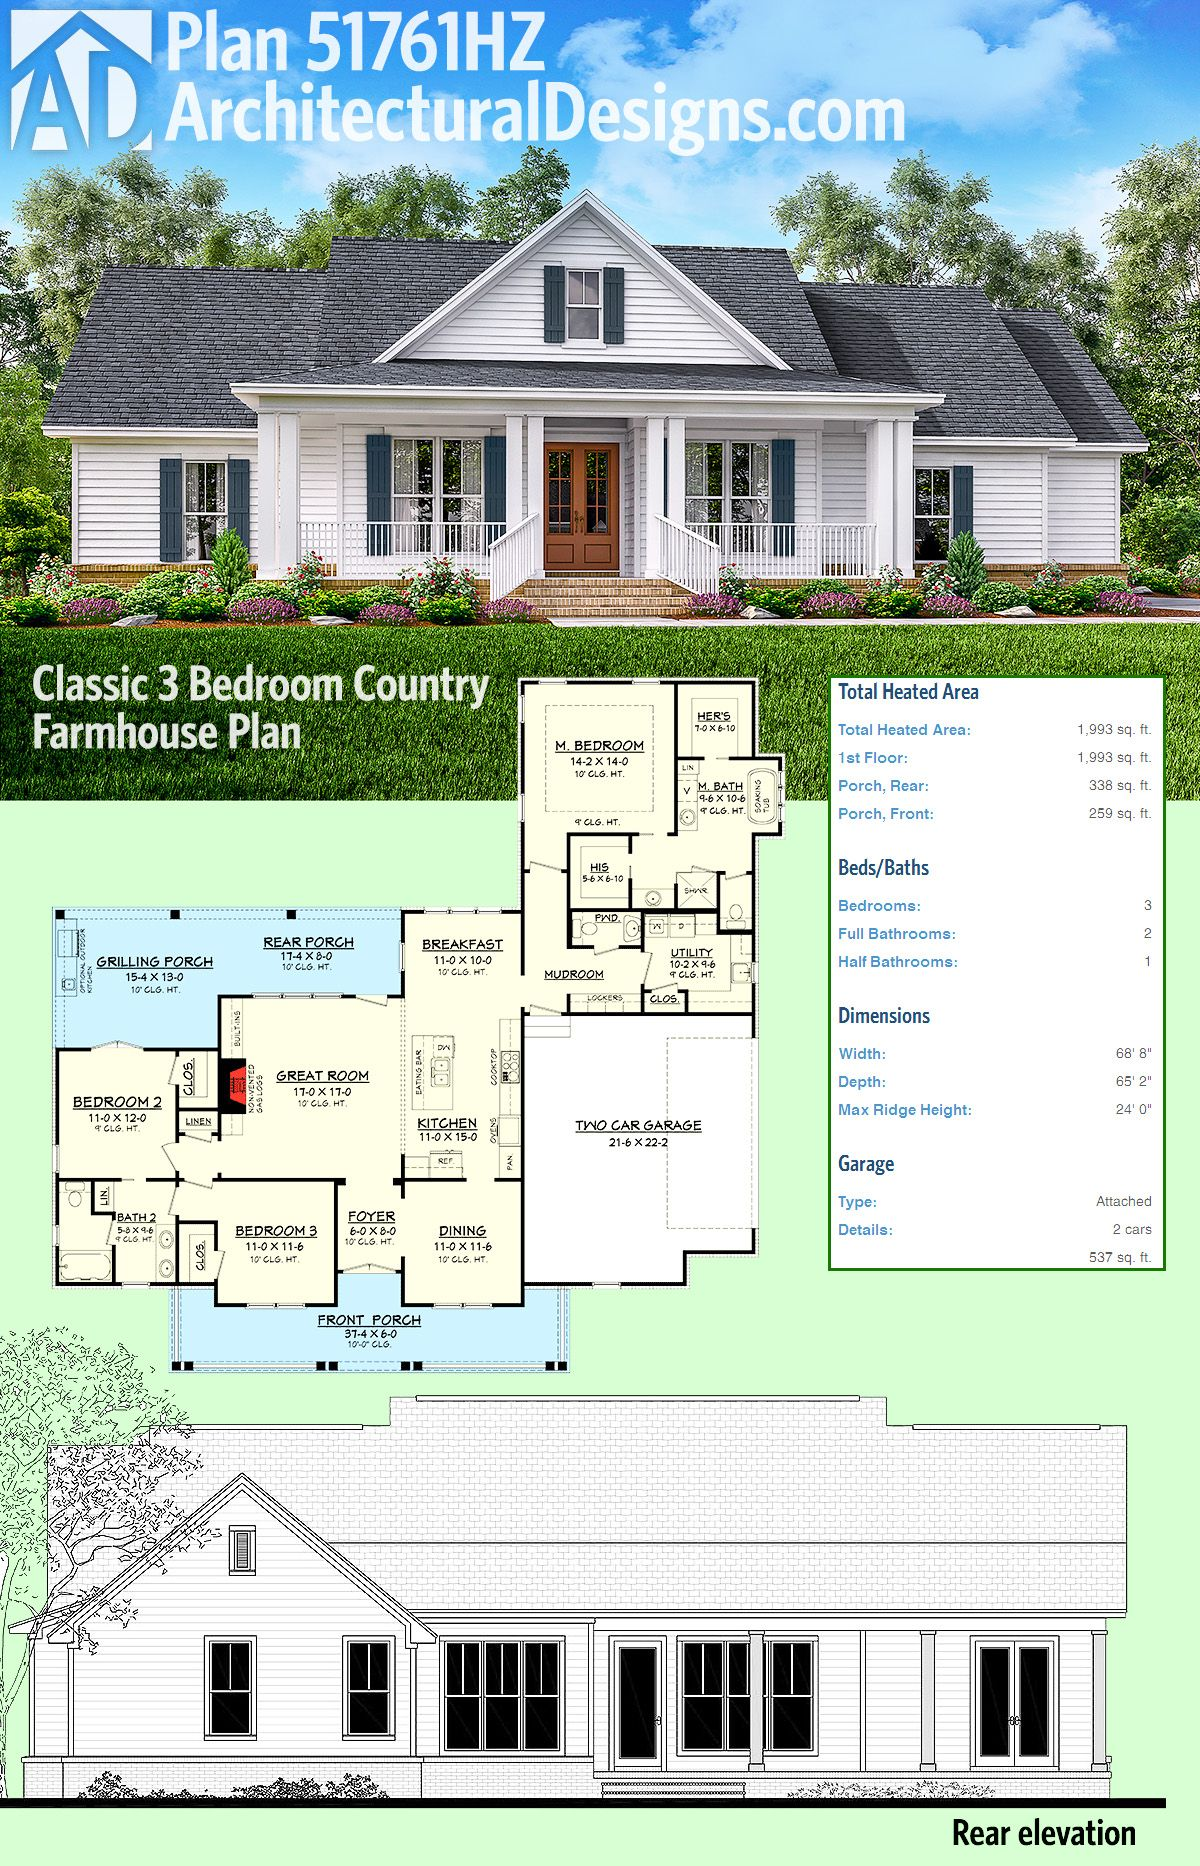 Plan 51761HZ: Classic 3 Bed Country Farmhouse Plan | Pinterest ...